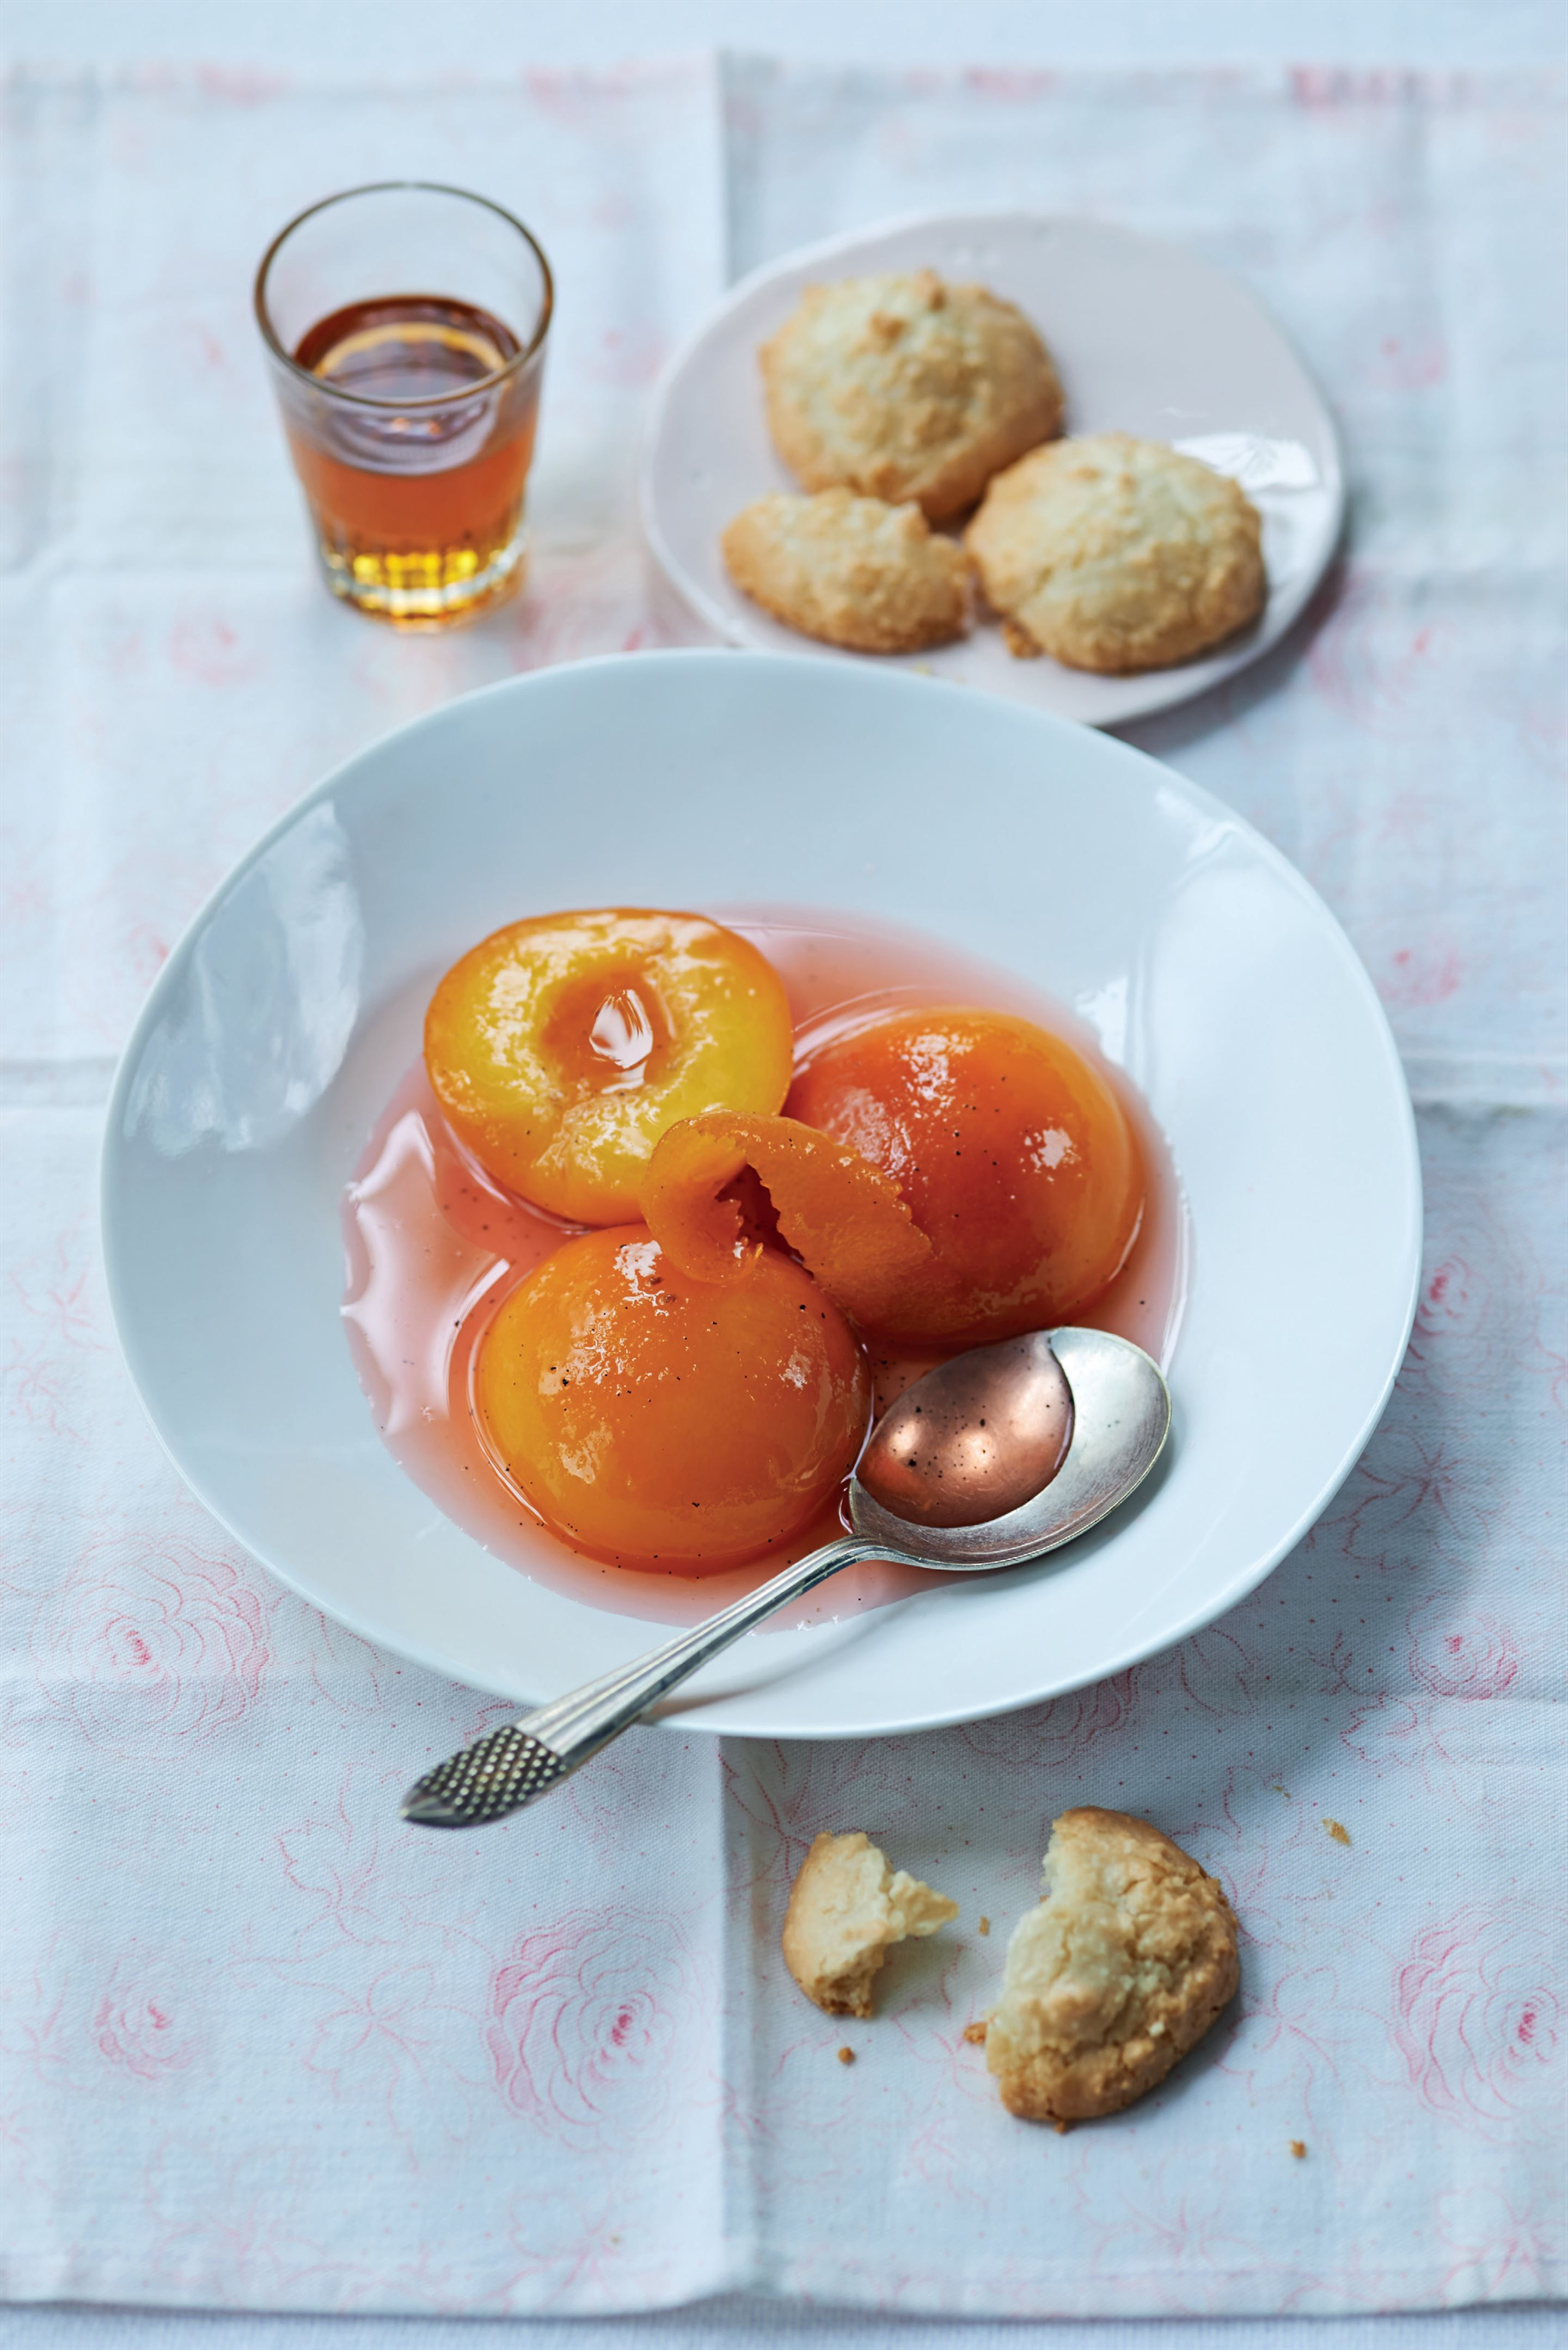 Prosecco poached peaches with amaretti